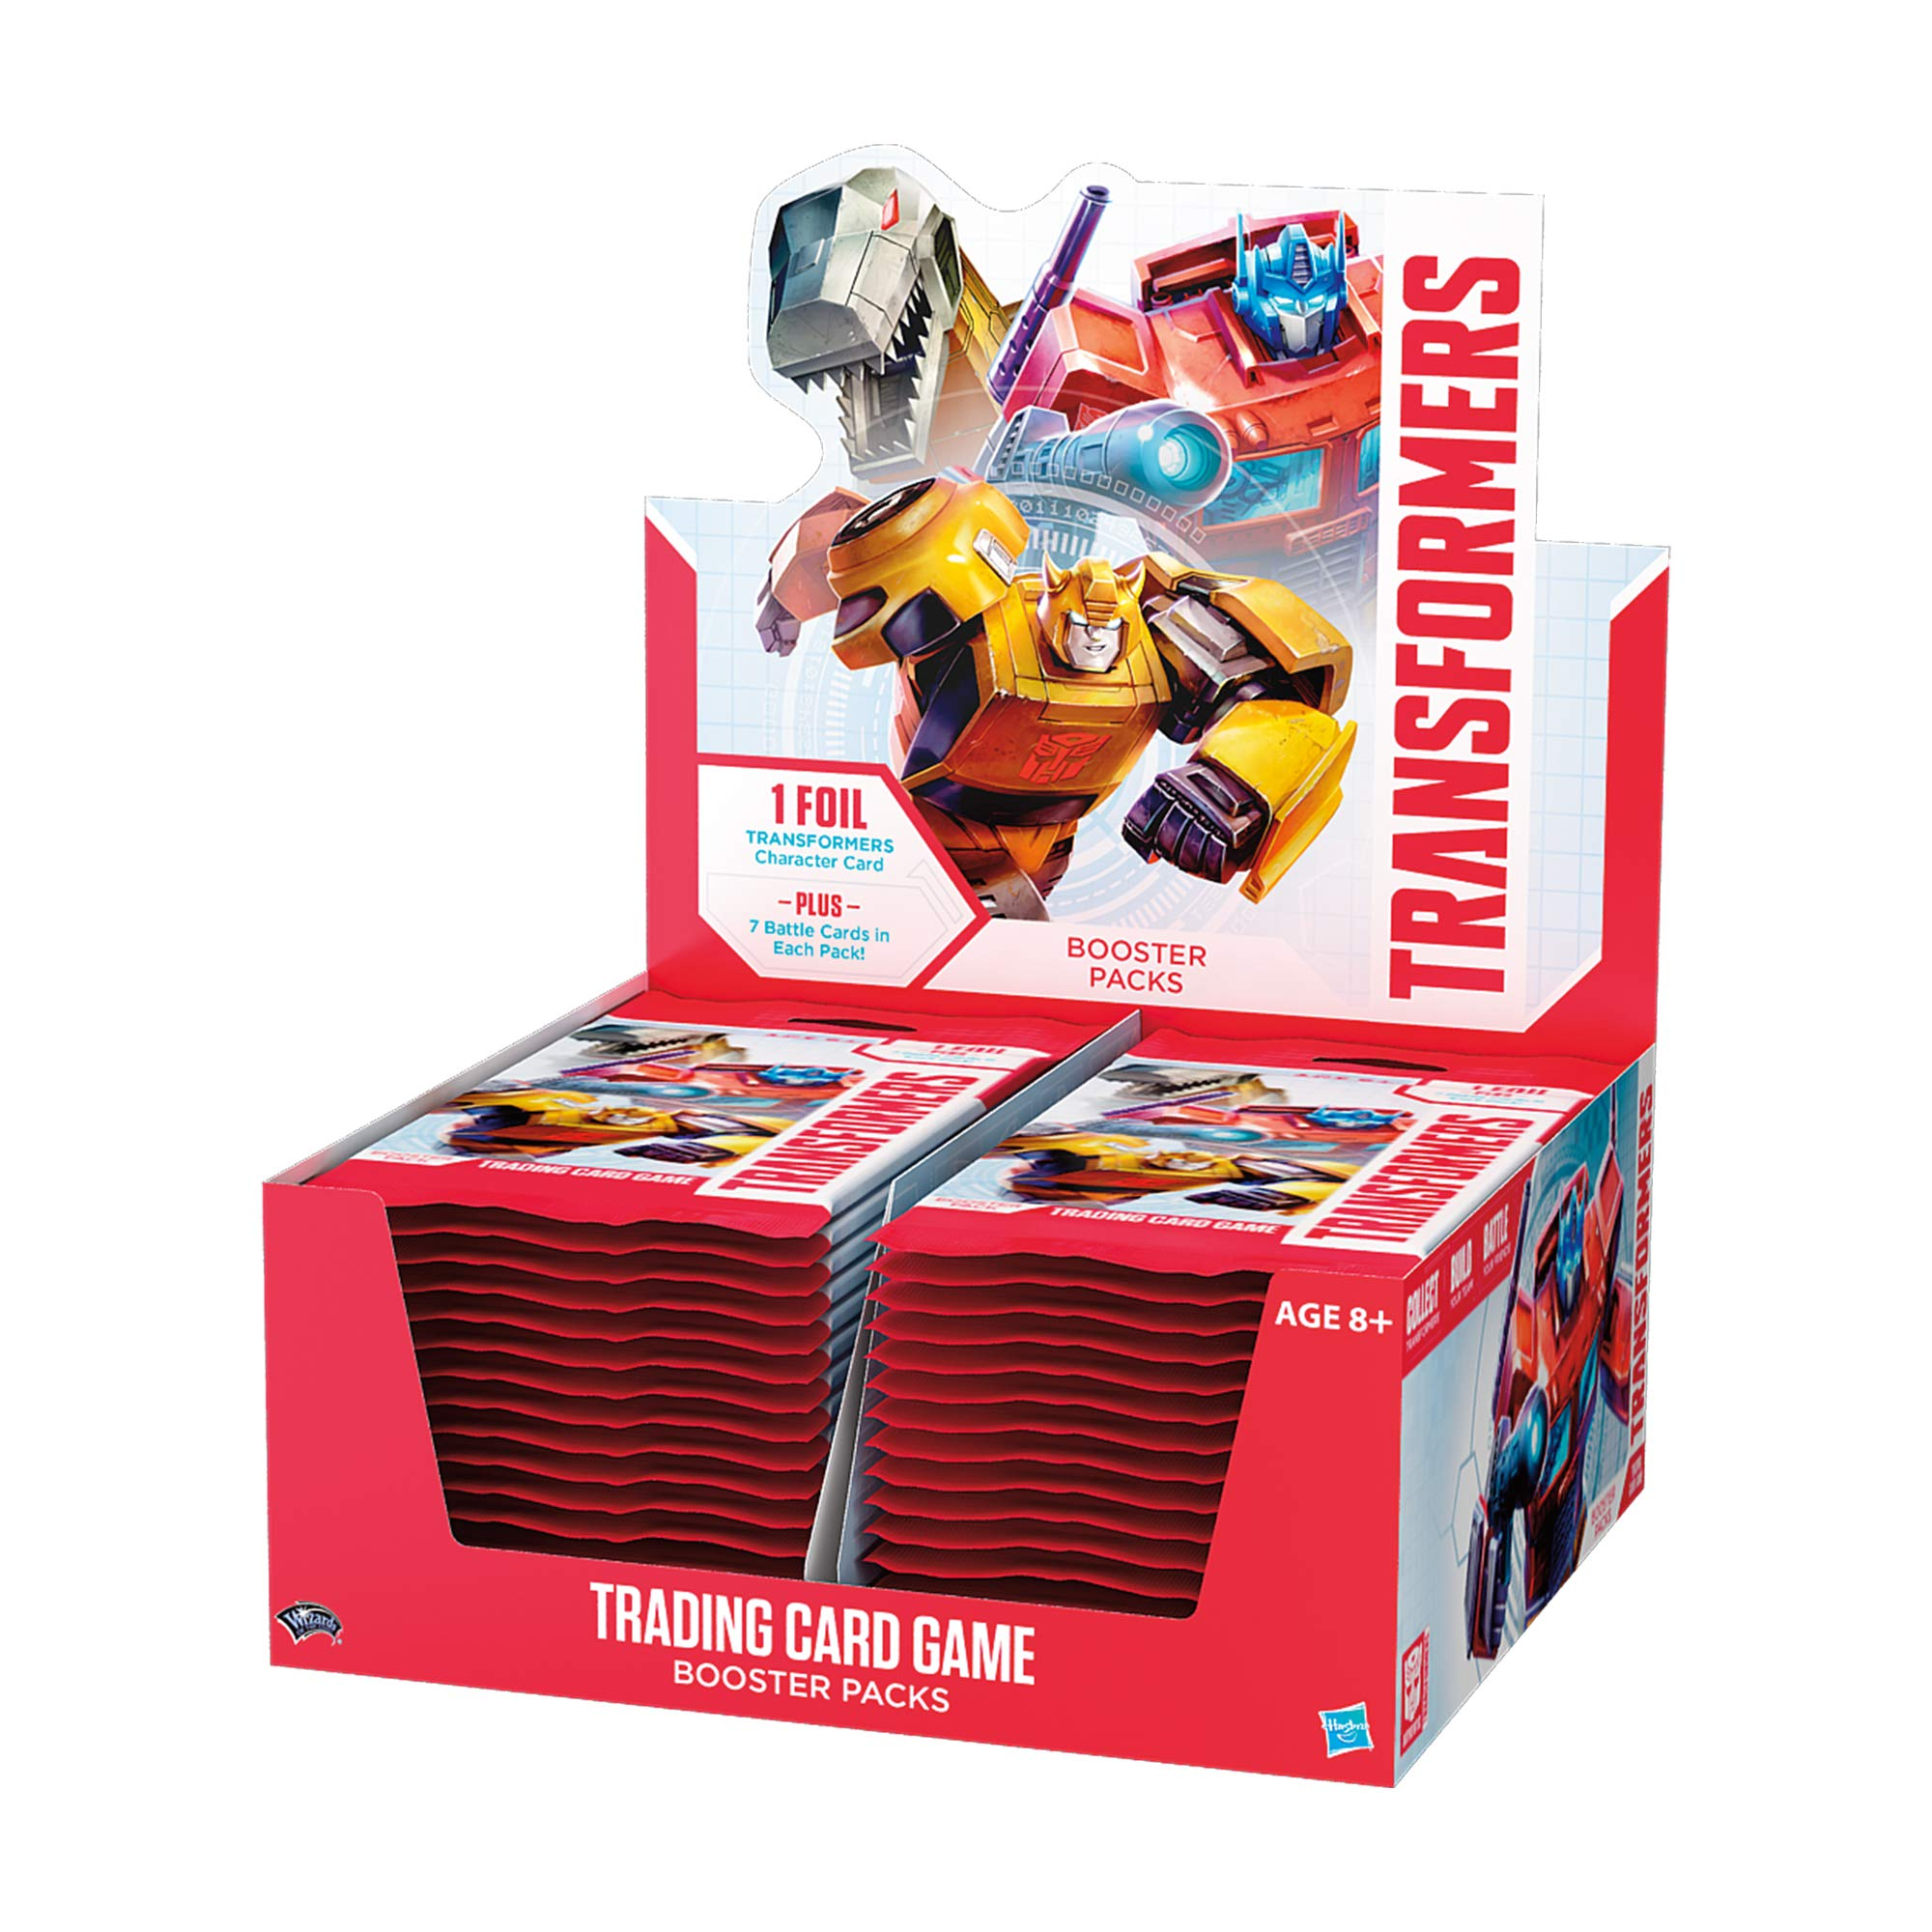 Transformers TCG Booster Box | 30 Booster Packs | 8 Transformers Cards Per Booster Pack by Transformers TCG (Image #1)